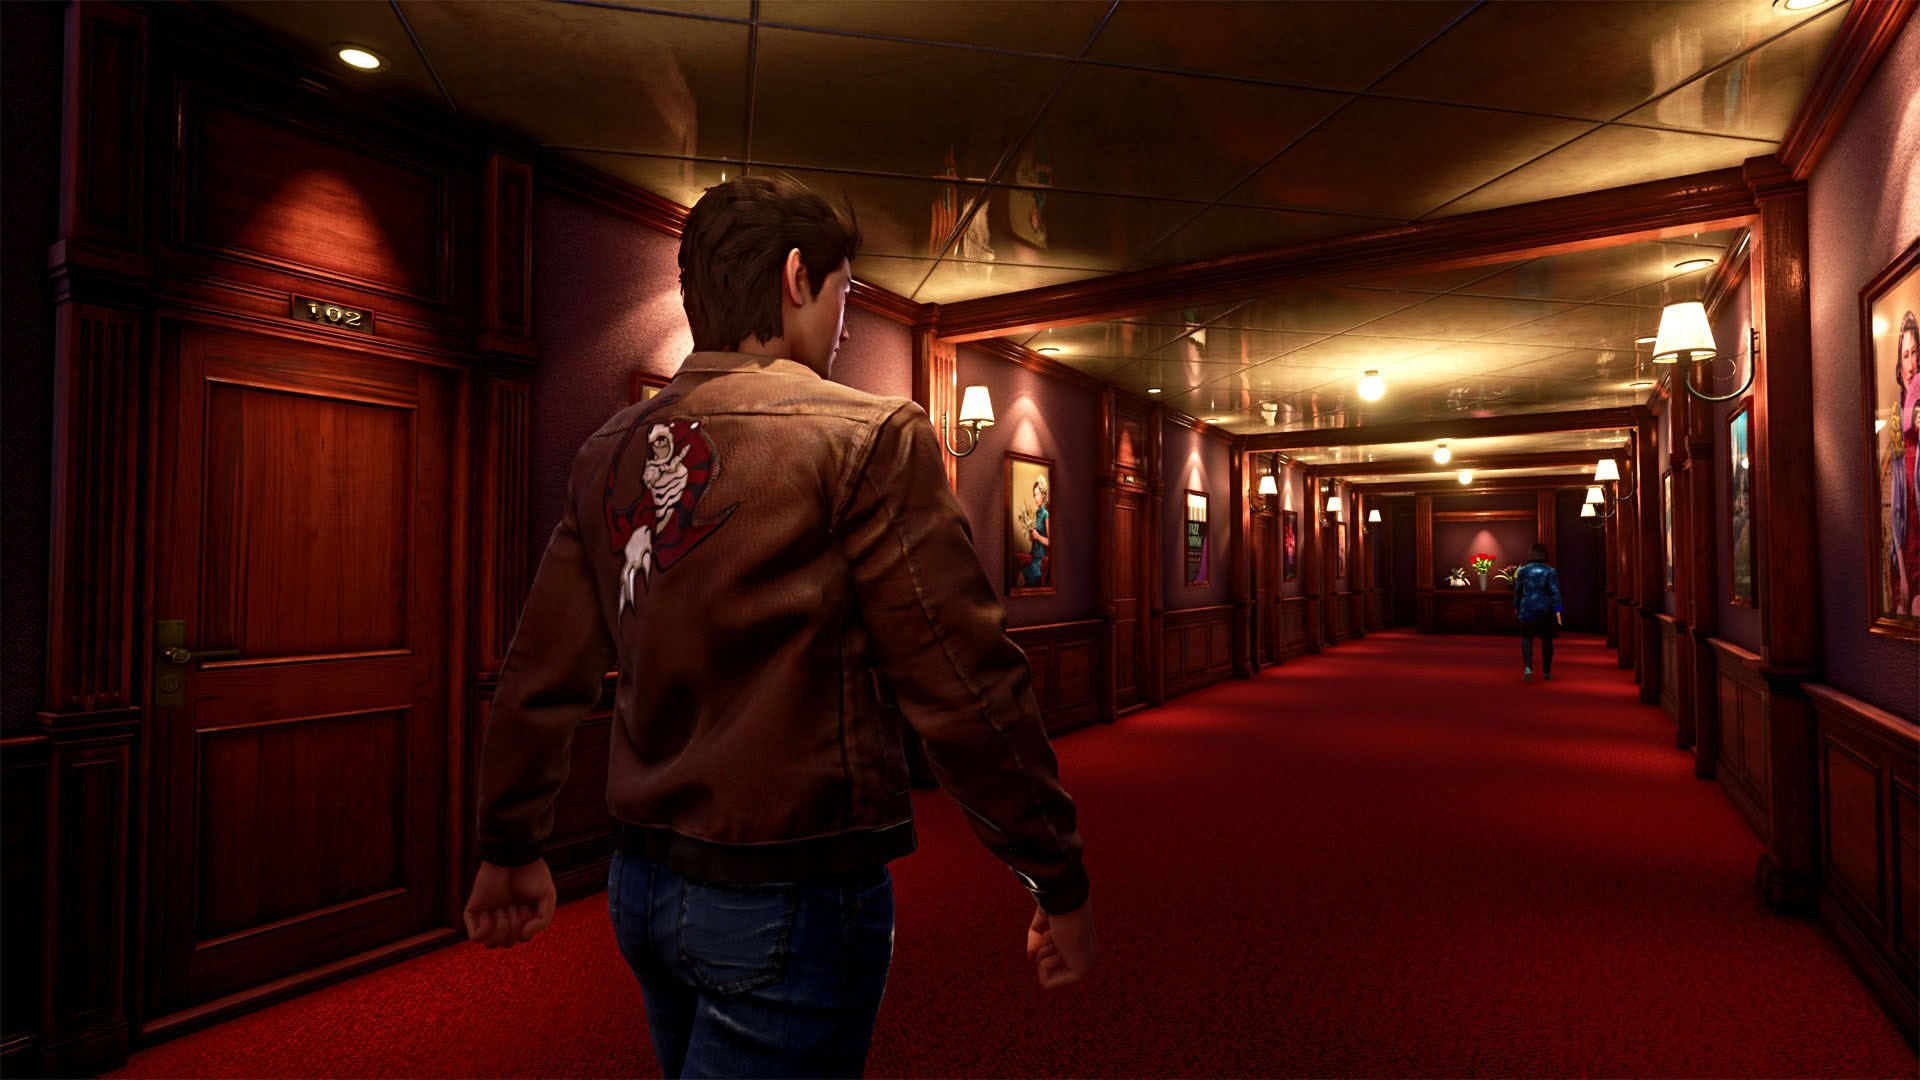 The Shenmue III Big Merry Cruise-Repack PC Direct Download [ Crack ]